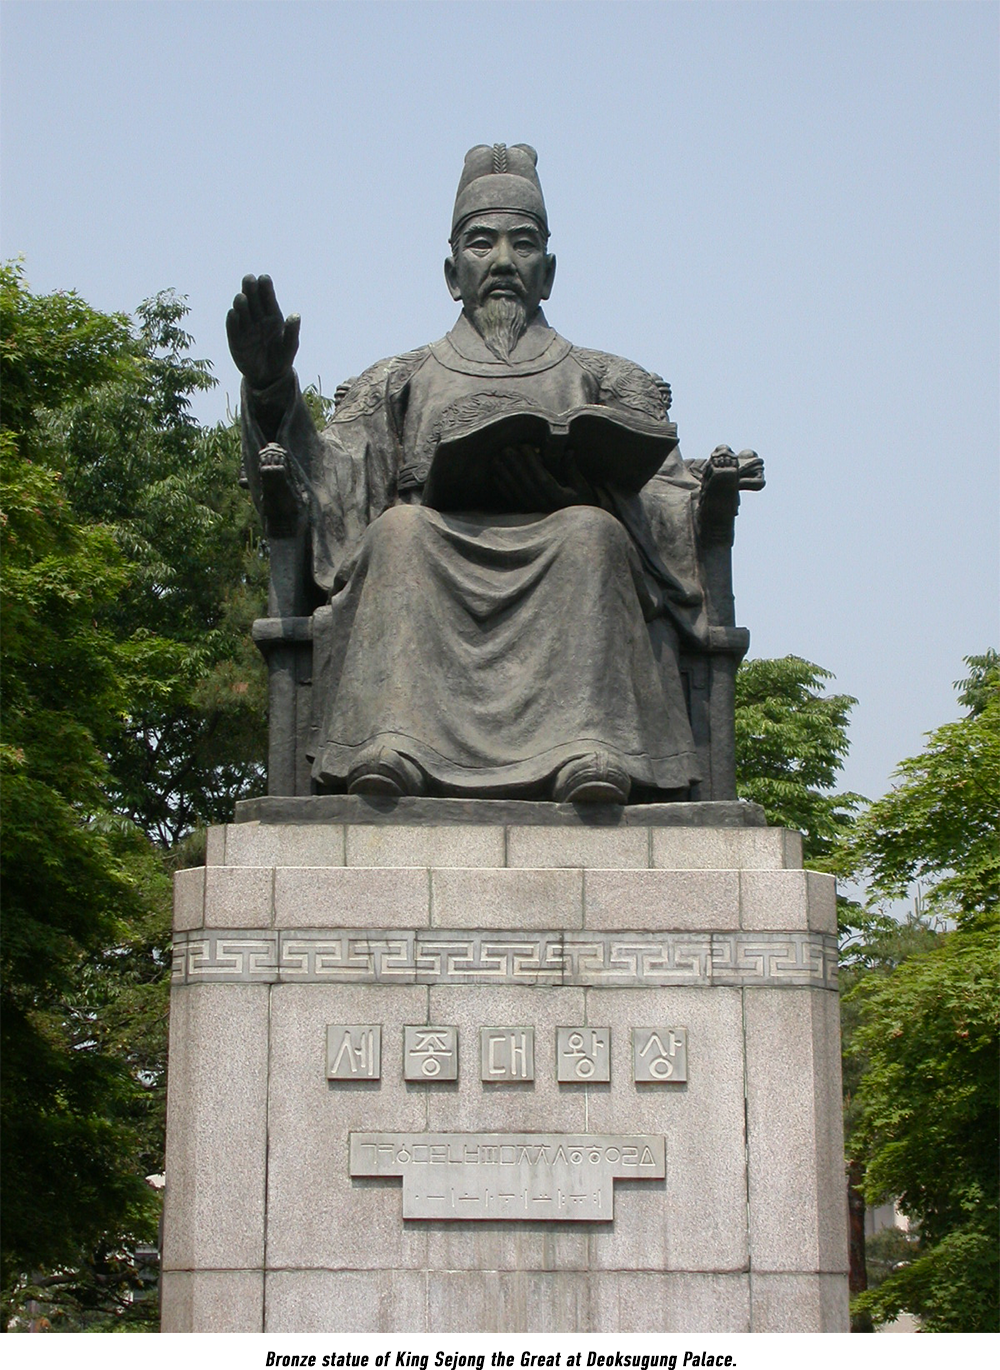 Bronze statue of King Sejong the Great at Deoksugung Palace